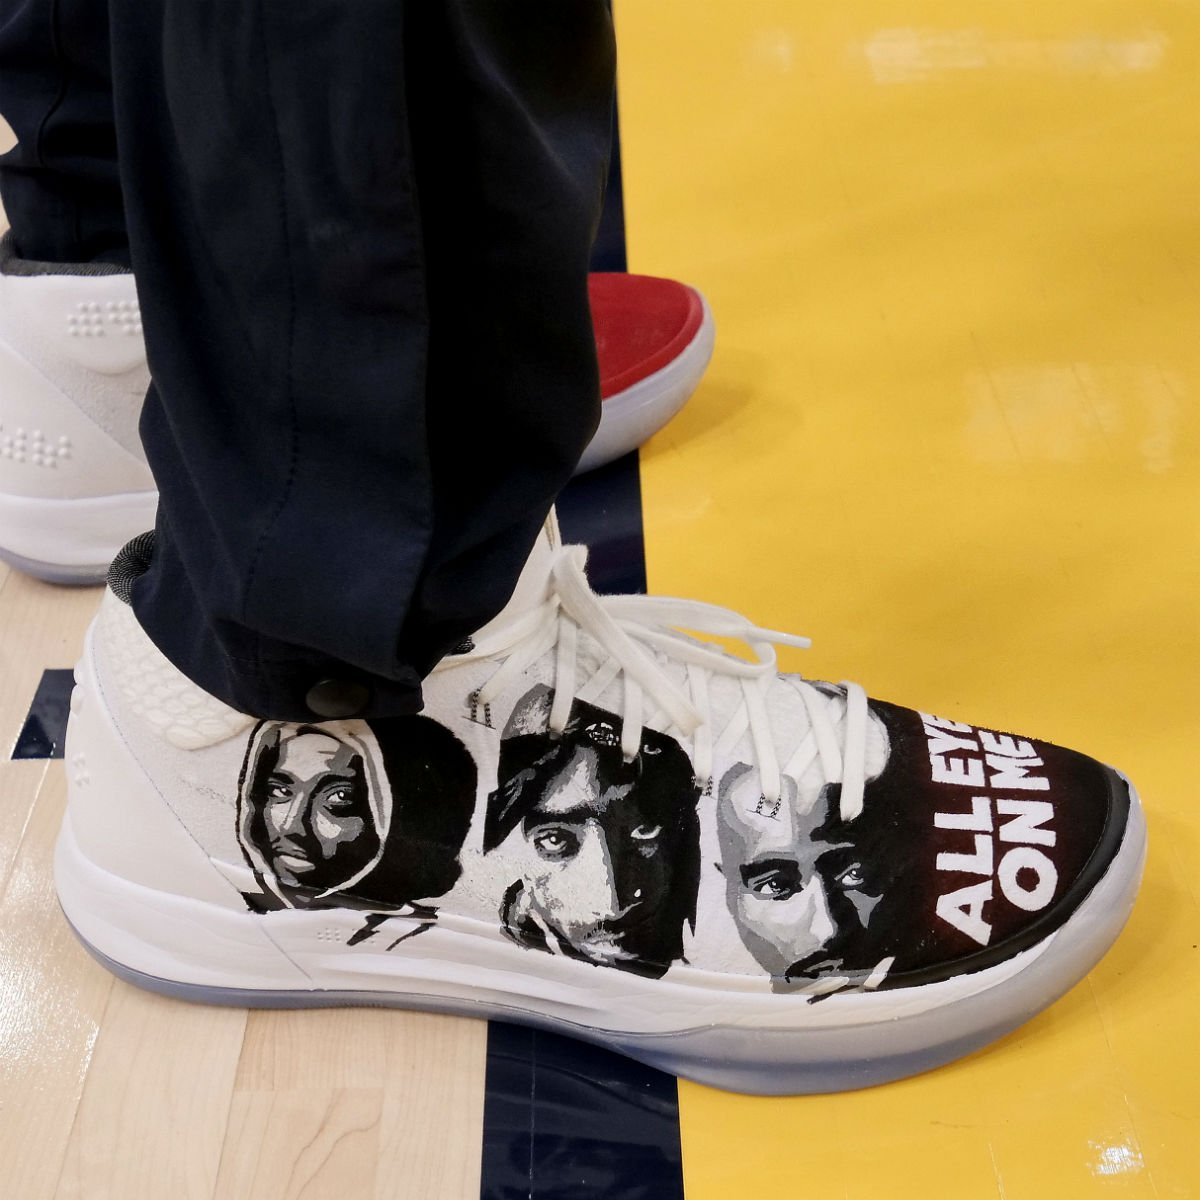 sports shoes 0a8d4 b30e2 showing some real california love with these 2pac inspired custom nike kobe  ad mids by ron